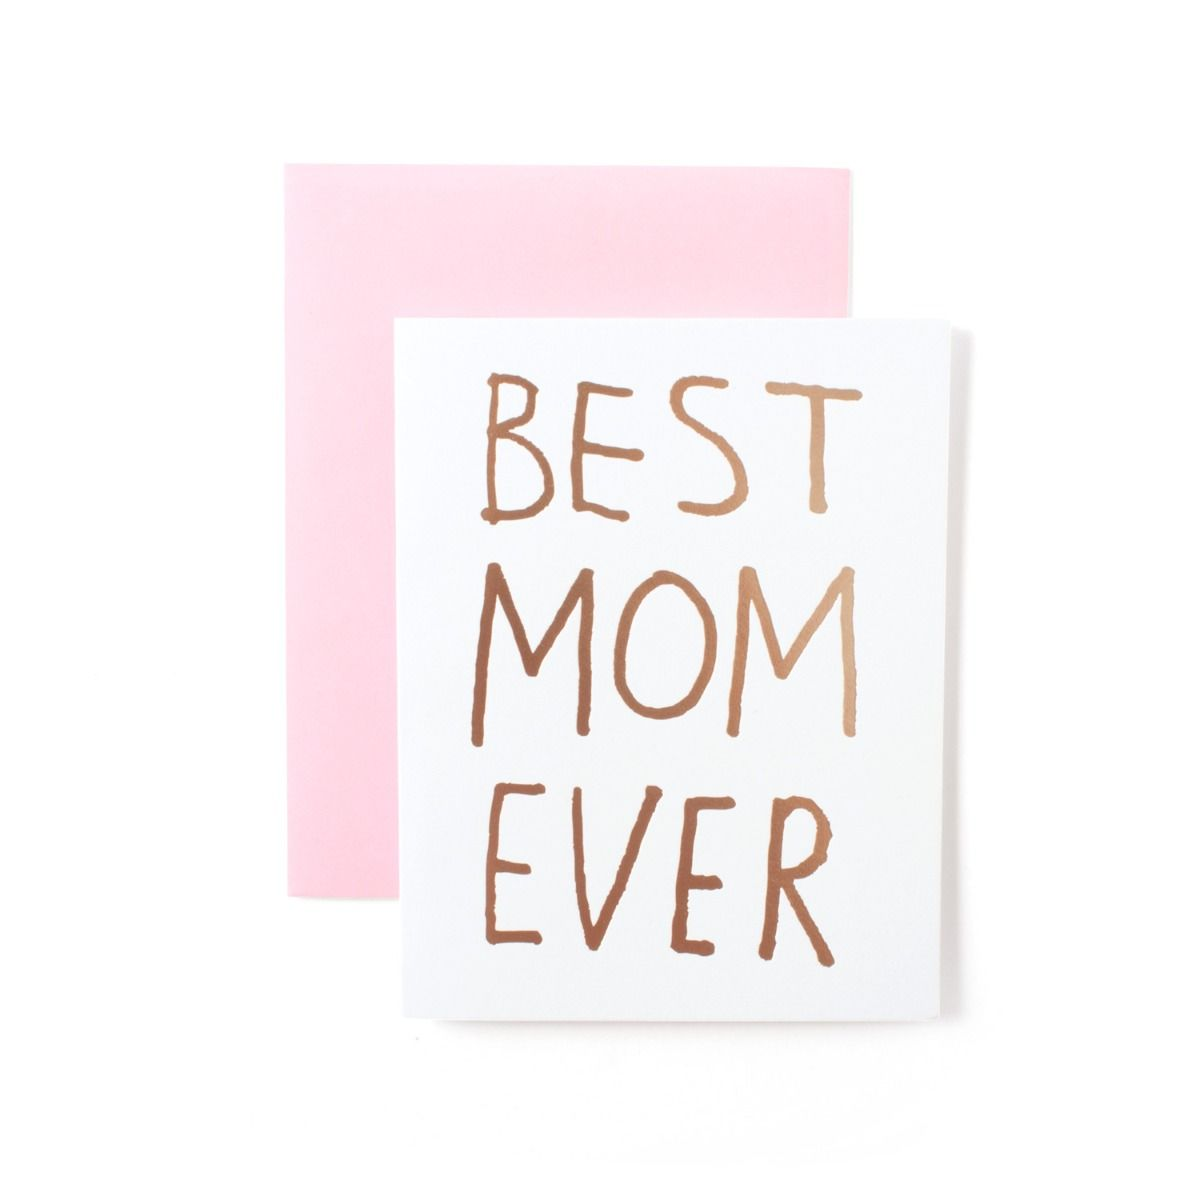 Catbird Mother's Day jewelry gifts